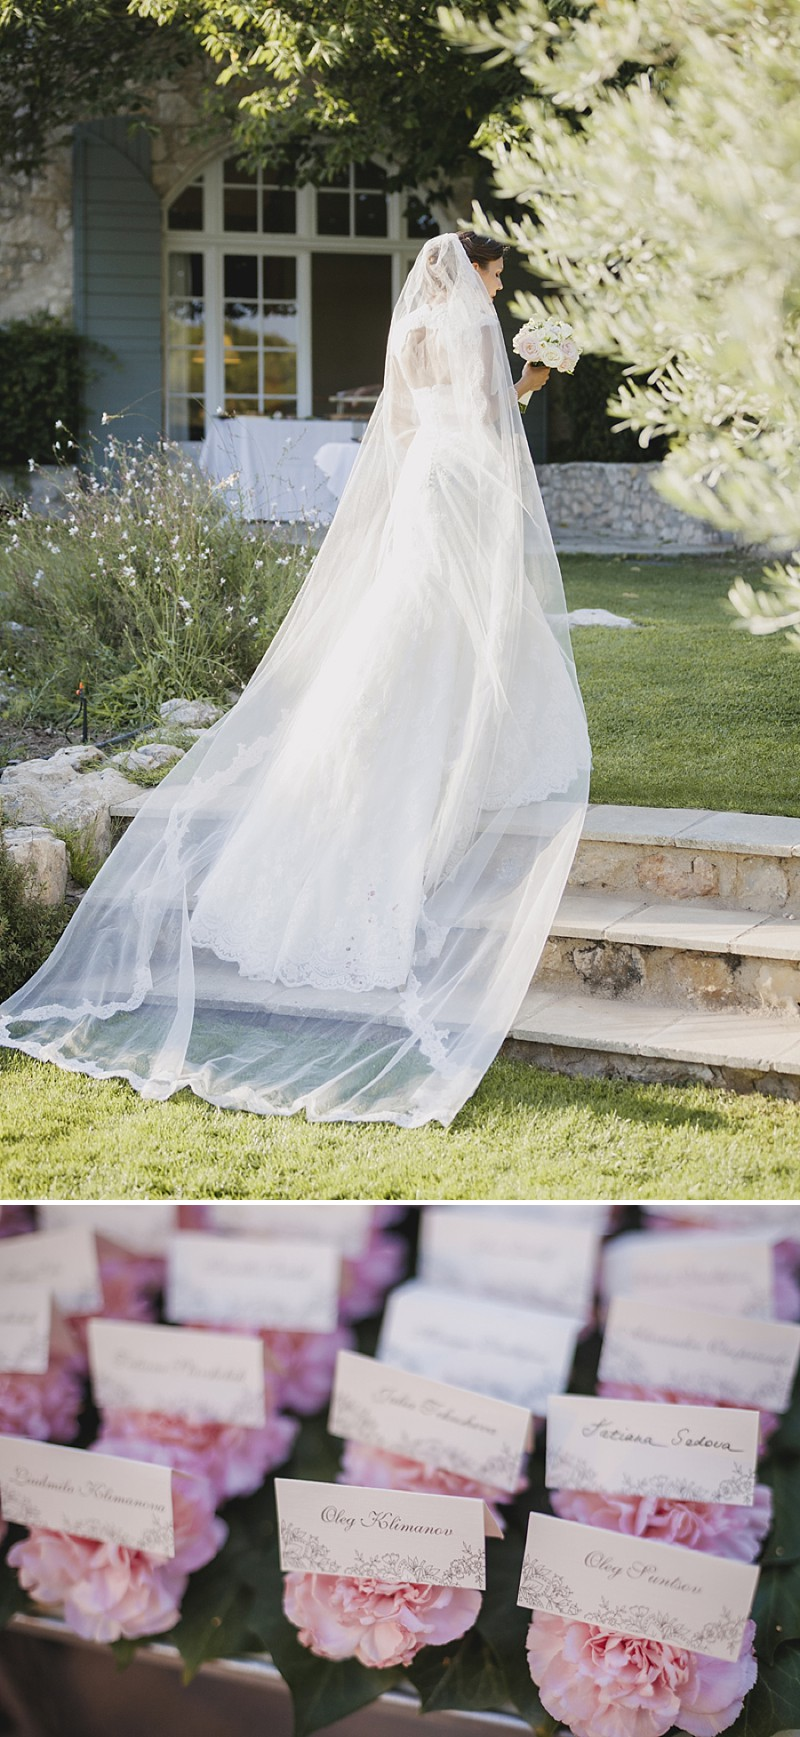 Elegant Wedding At Le Mas De La Rose Provence With Bride In Lace Fishtail Gown By Pronovias And Groom In Navy Armani Tuxedo With Images From Jo Hastings Wedding Photography 0008 La Sophistication Et Simplicité En Provence.